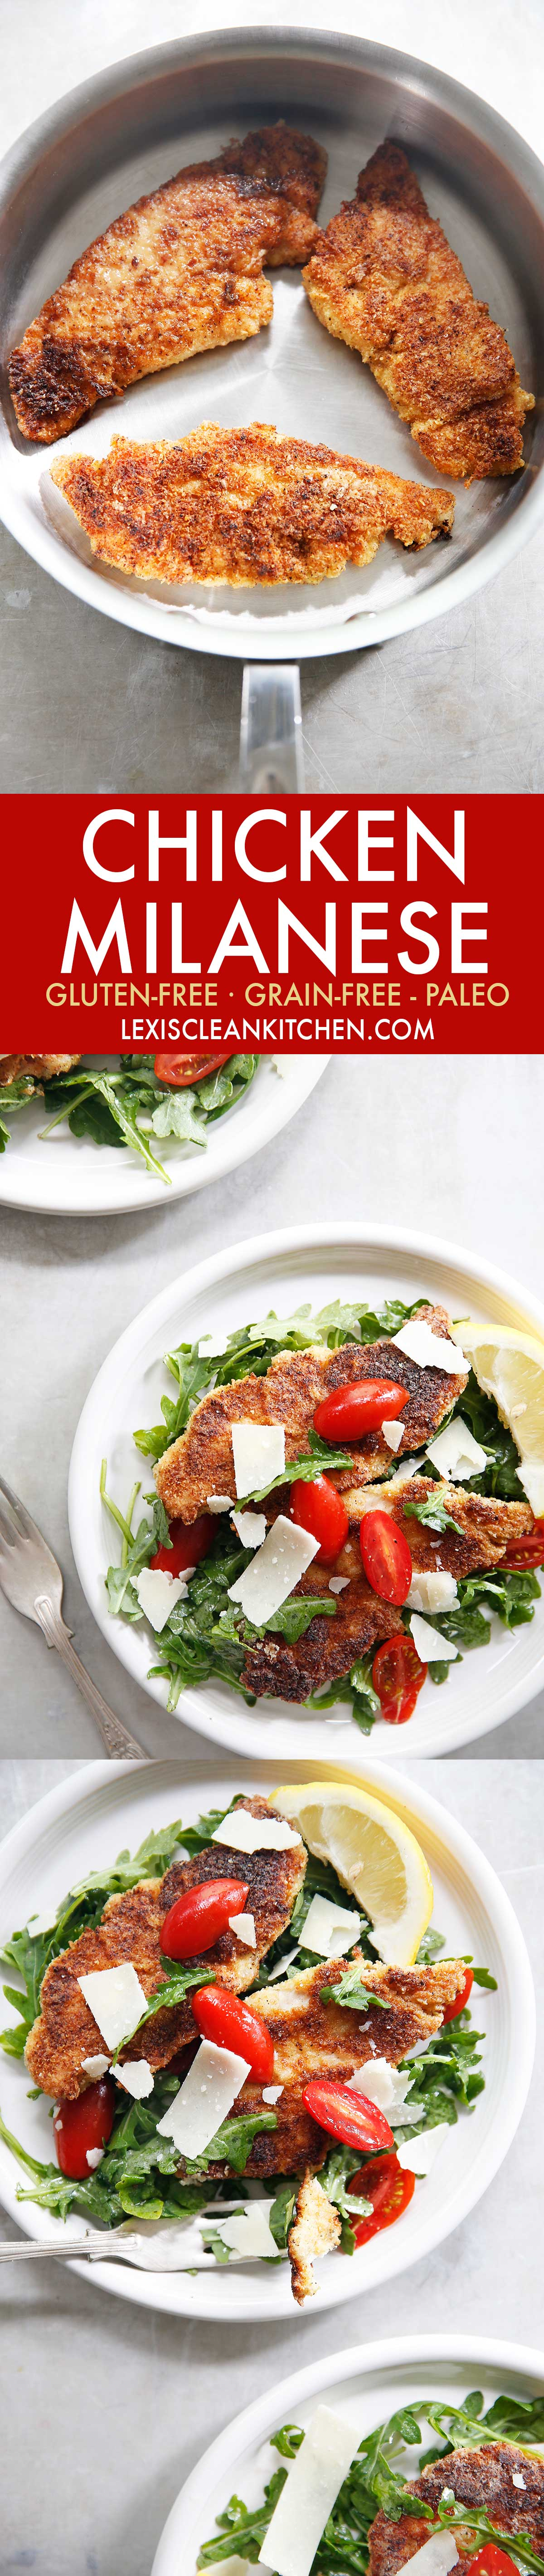 Chicken Milanese {grain-free, paleo-friendly} | Lexi's Clean Kitchen